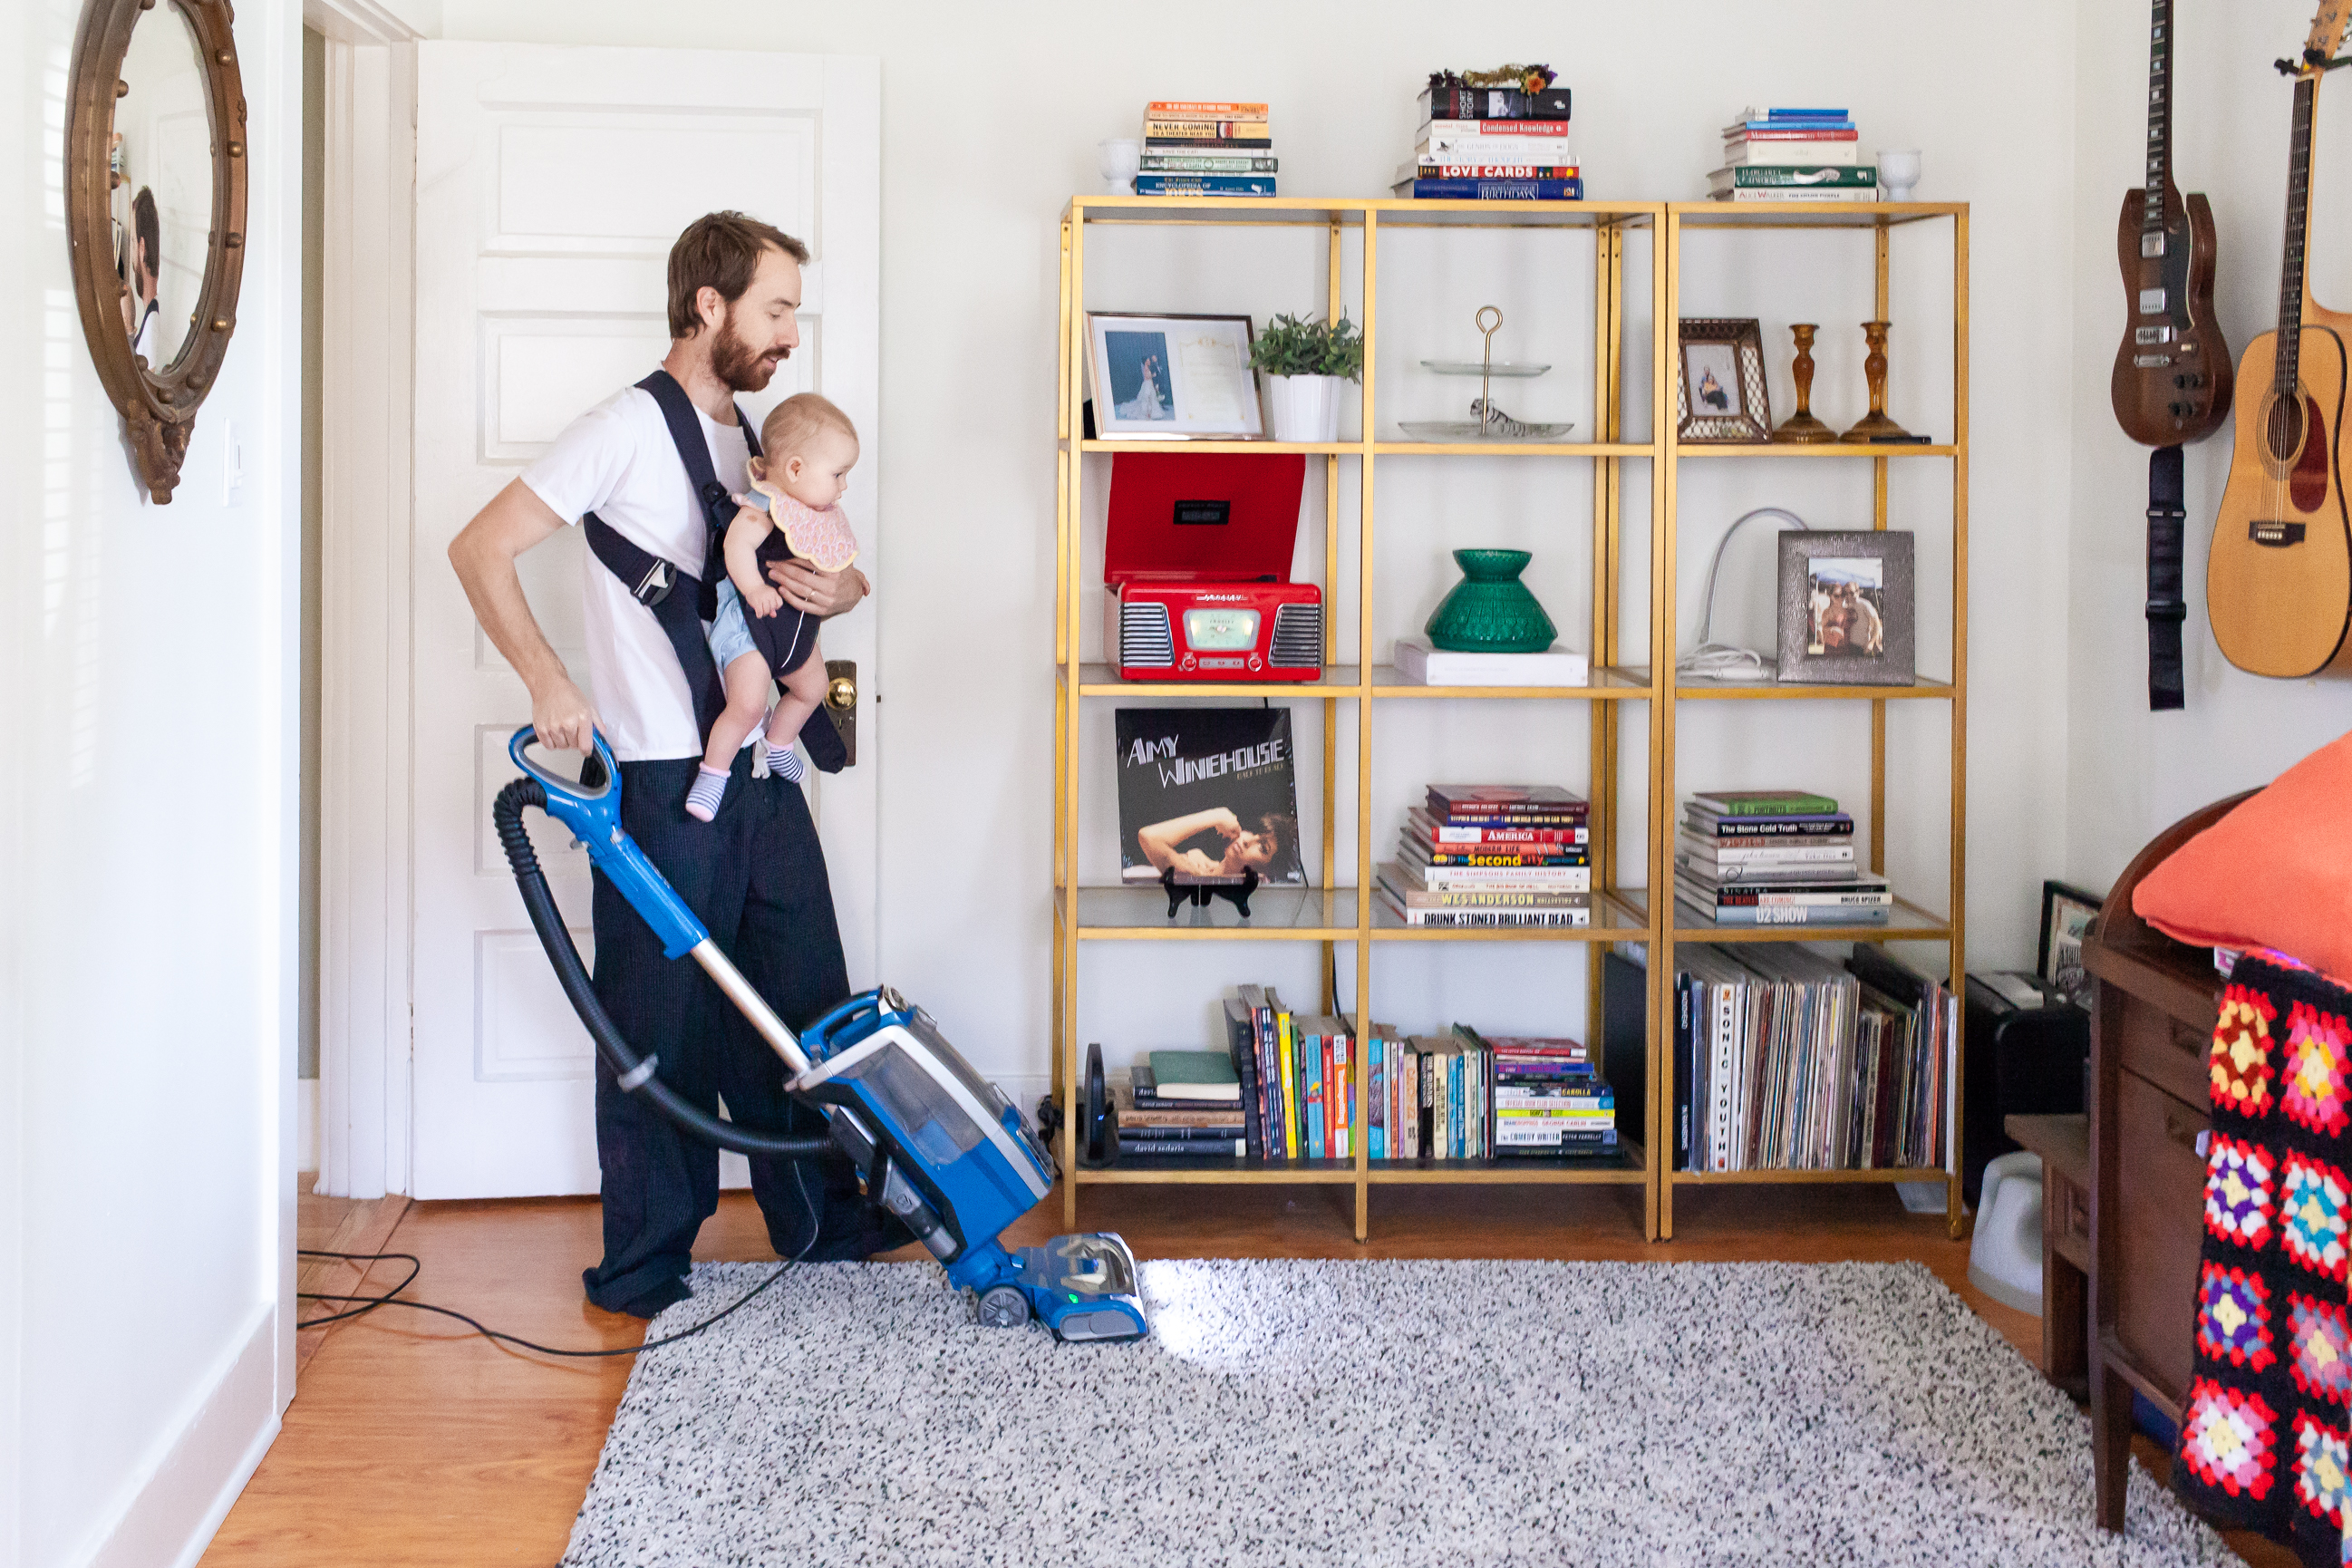 Documentary photograph showing a dad cleaning the house with a baby carrier and baby strapped to him